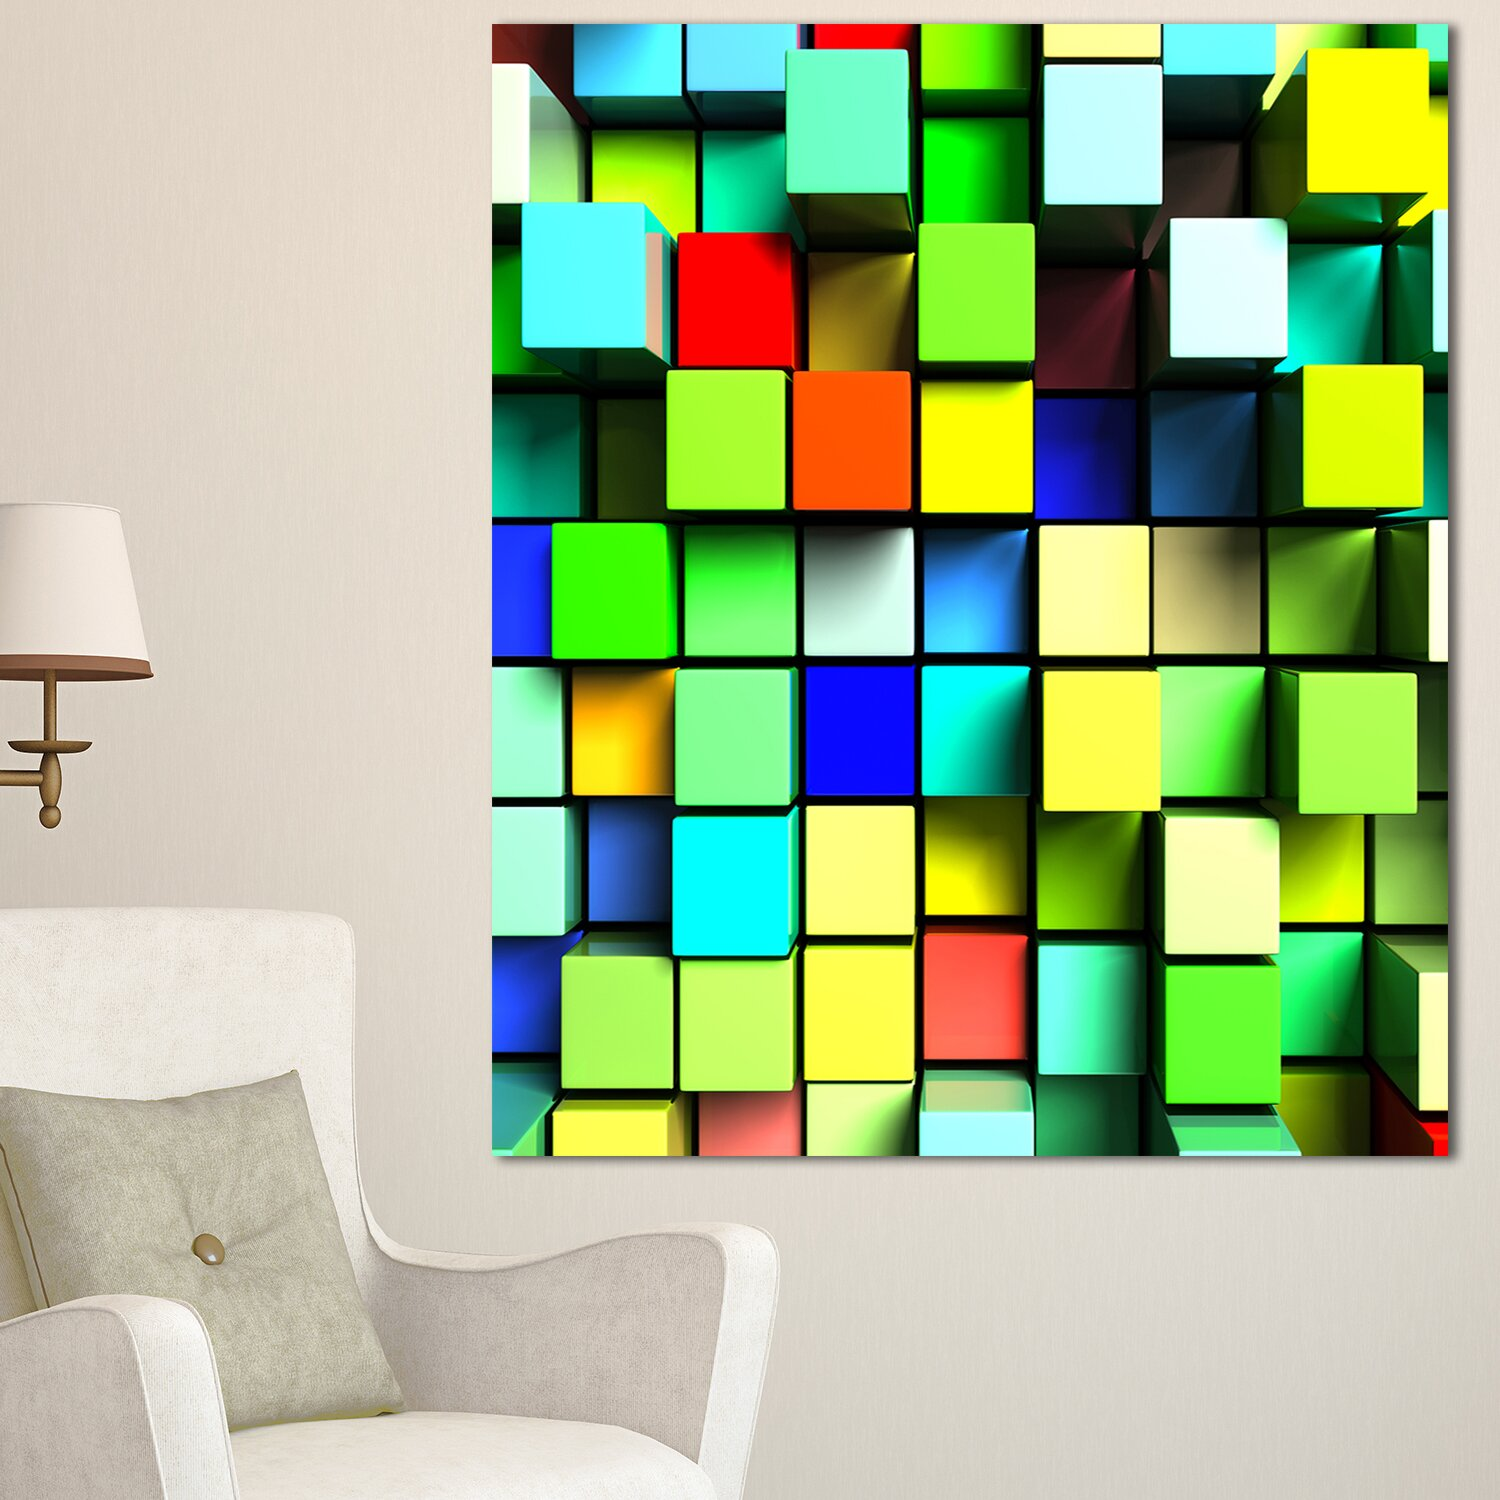 DesignArt Colored 3D Cubes Wall Design Graphic Art on